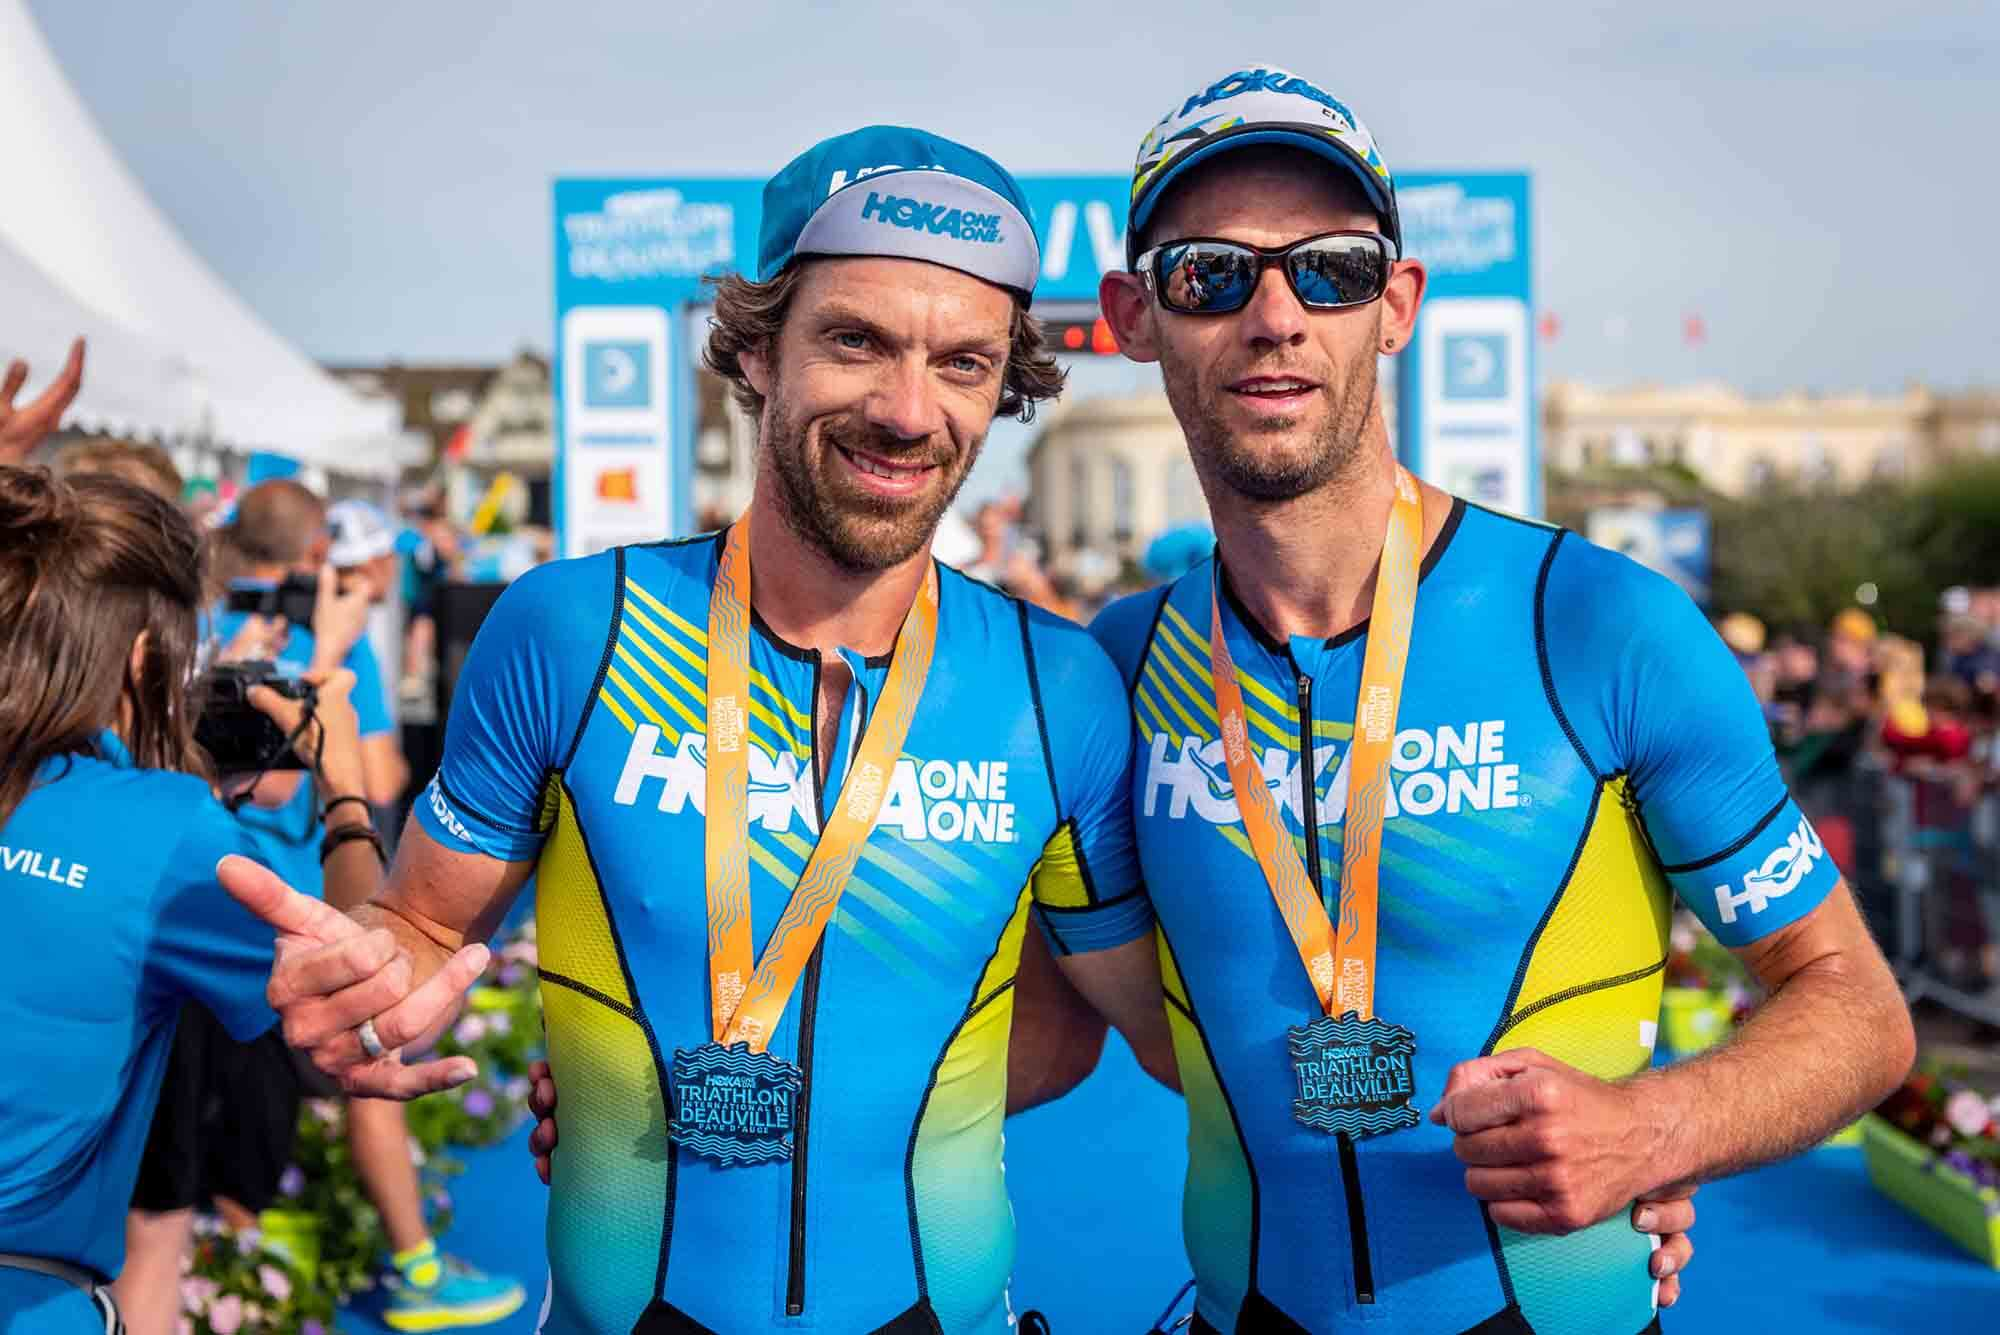 HOKA athletes Olivier Lyoen and Antoine Perel after their victory at 2018 Deauville Triathlon